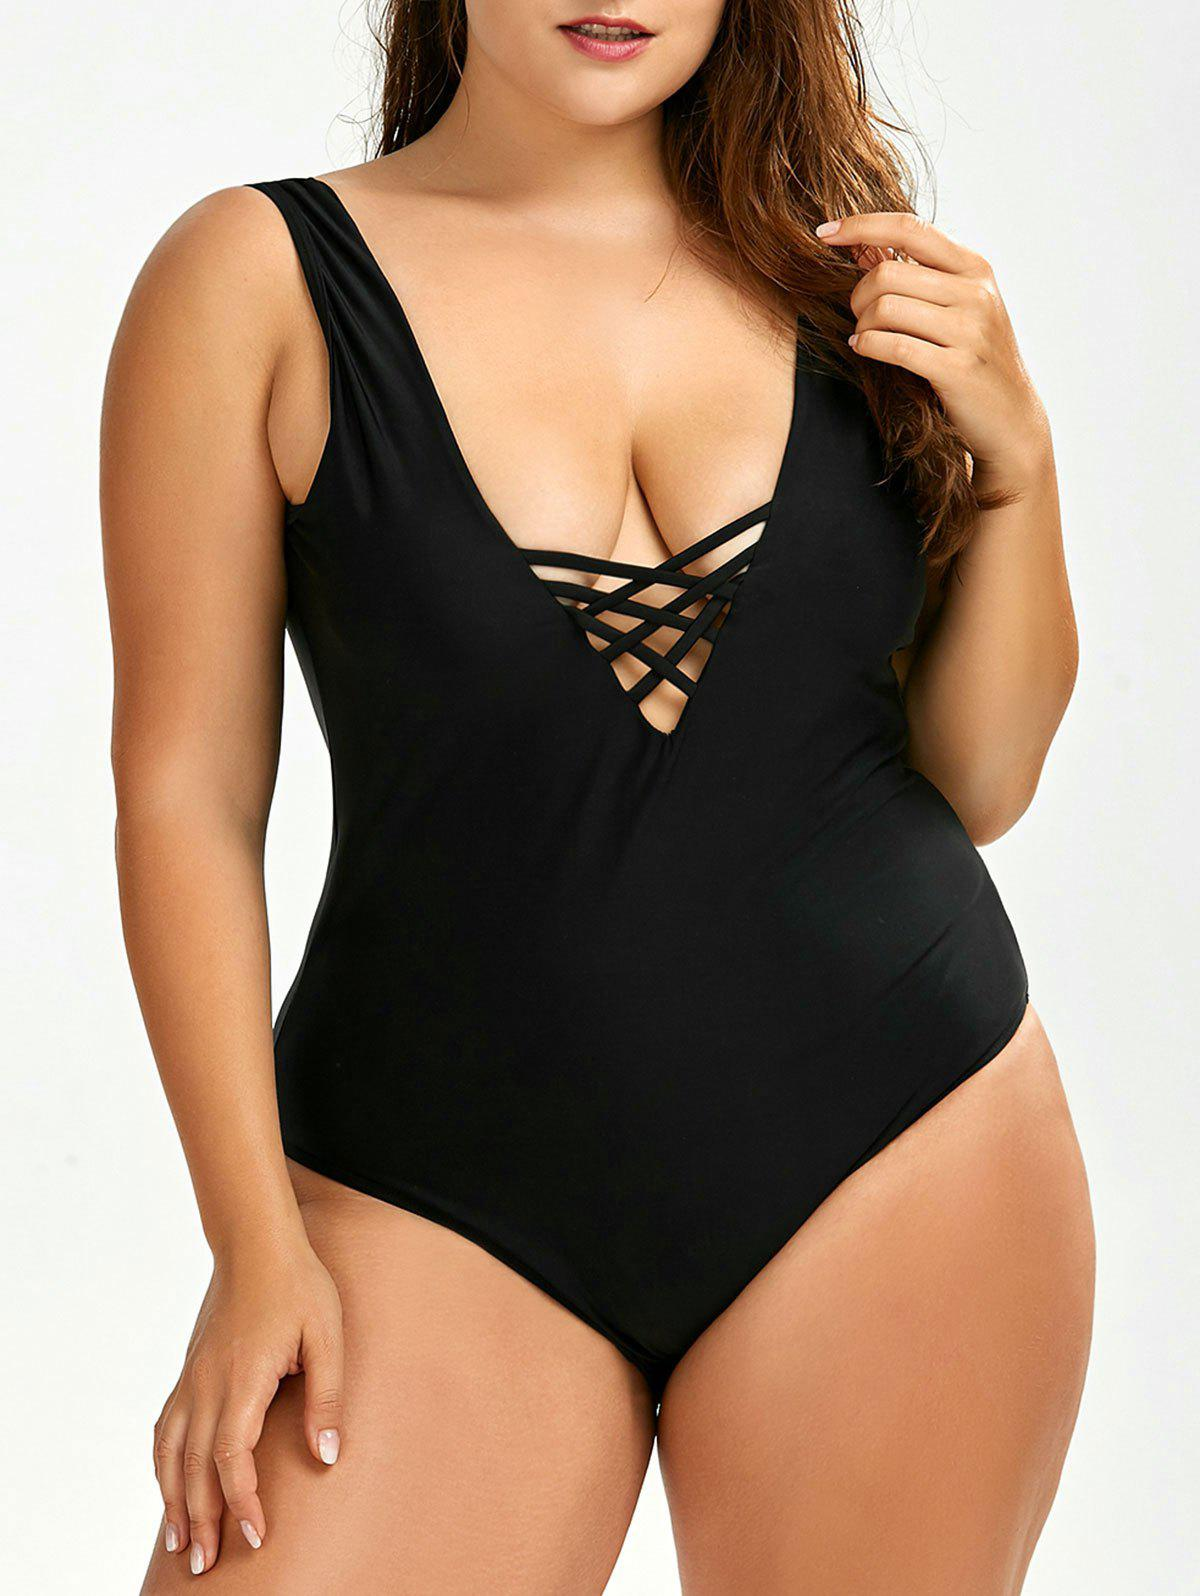 Plus Size Backless SwimwearWOMEN<br><br>Size: XL; Color: BLACK; Gender: For Women; Swimwear Type: One Piece; Material: Polyester; Bra Style: Padded; Support Type: Wire Free; Pattern Type: Polka Dot; Waist: Natural; Elasticity: Micro-elastic; Weight: 0.2000kg; Package Contents: 1 x Swimwear;